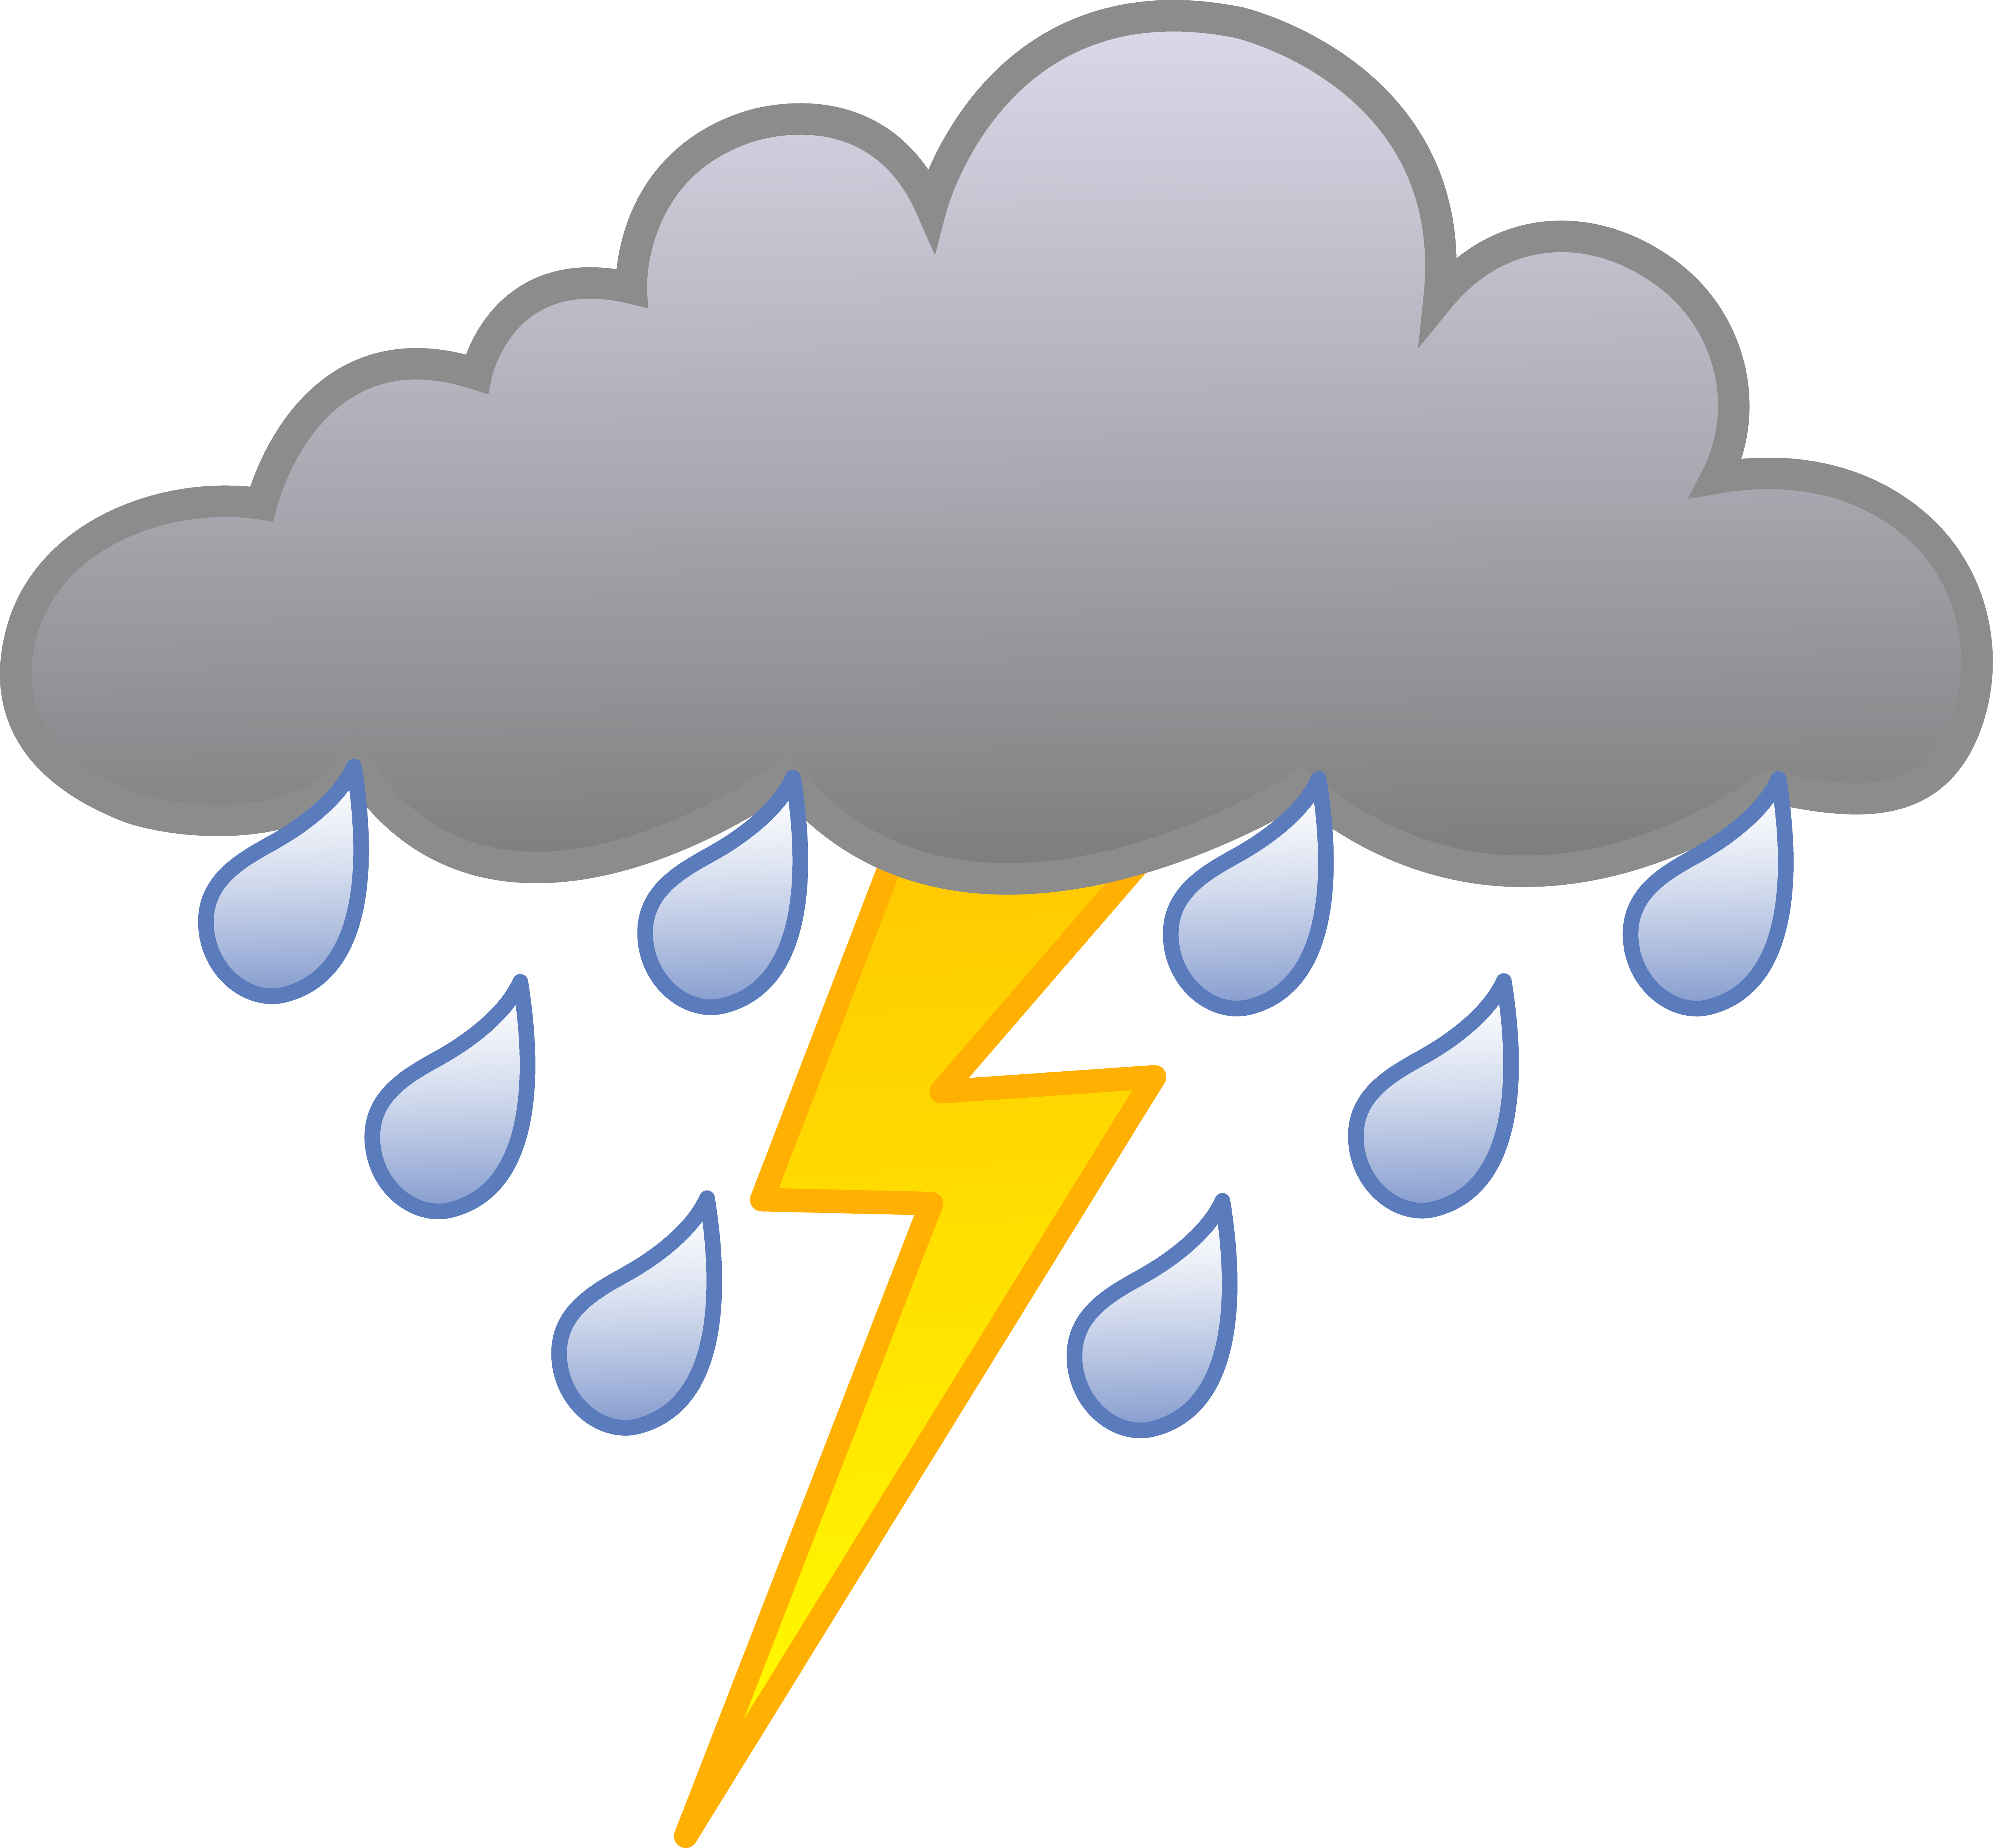 Thunder Storm clipart #18, Download drawings